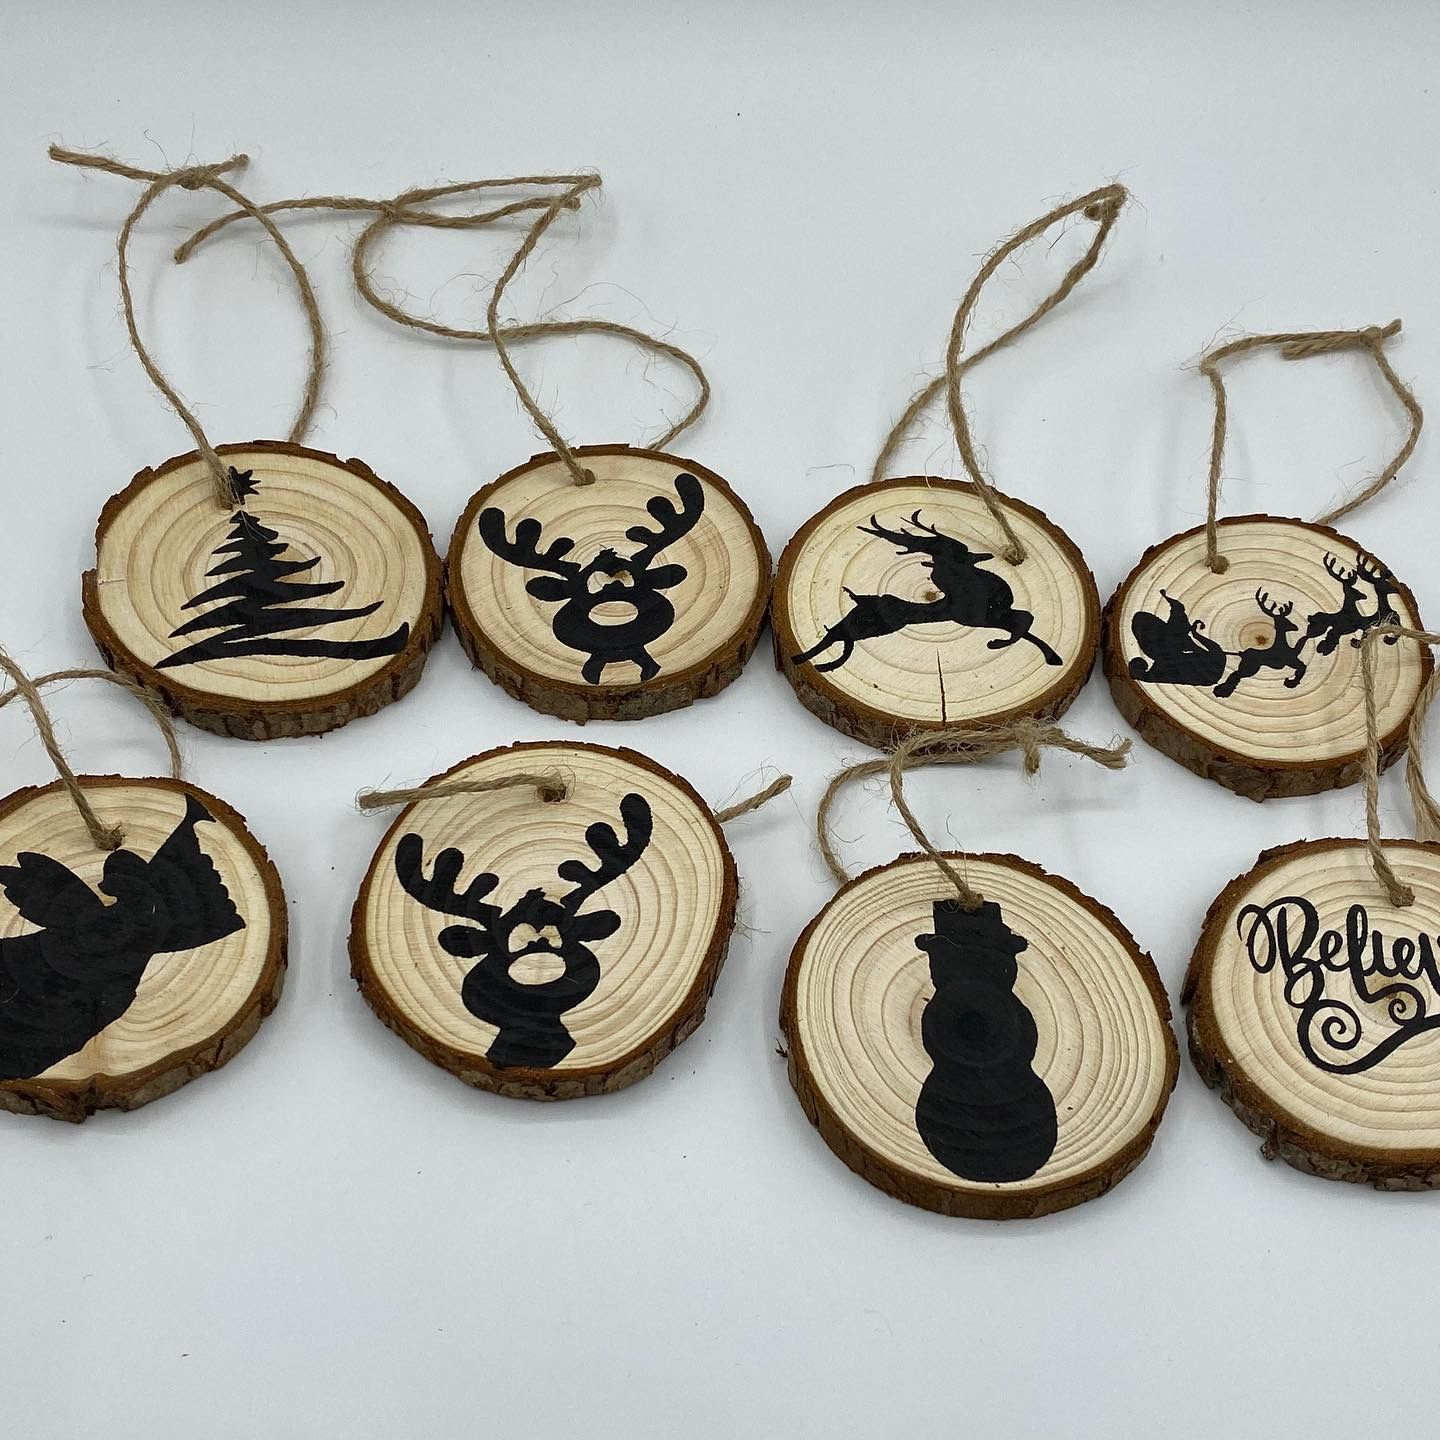 Hand Painted Wood Christmas Tree Ornaments Etsy Wood Christmas Tree Wood Christmas Ornaments Hand Painted Wood